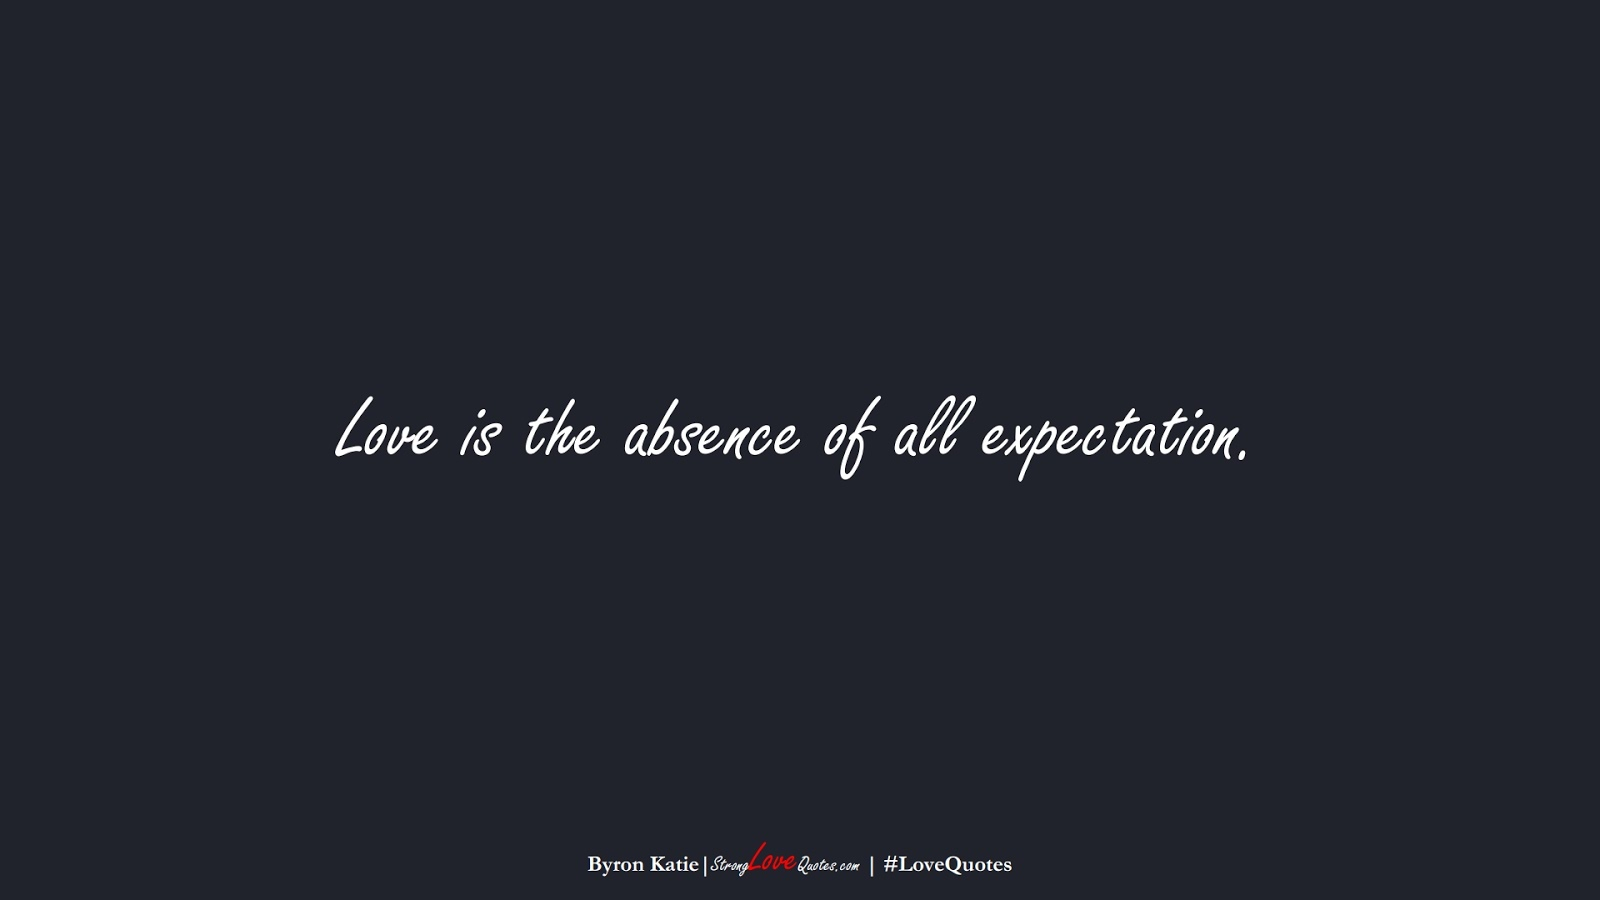 Love is the absence of all expectation. (Byron Katie);  #LoveQuotes